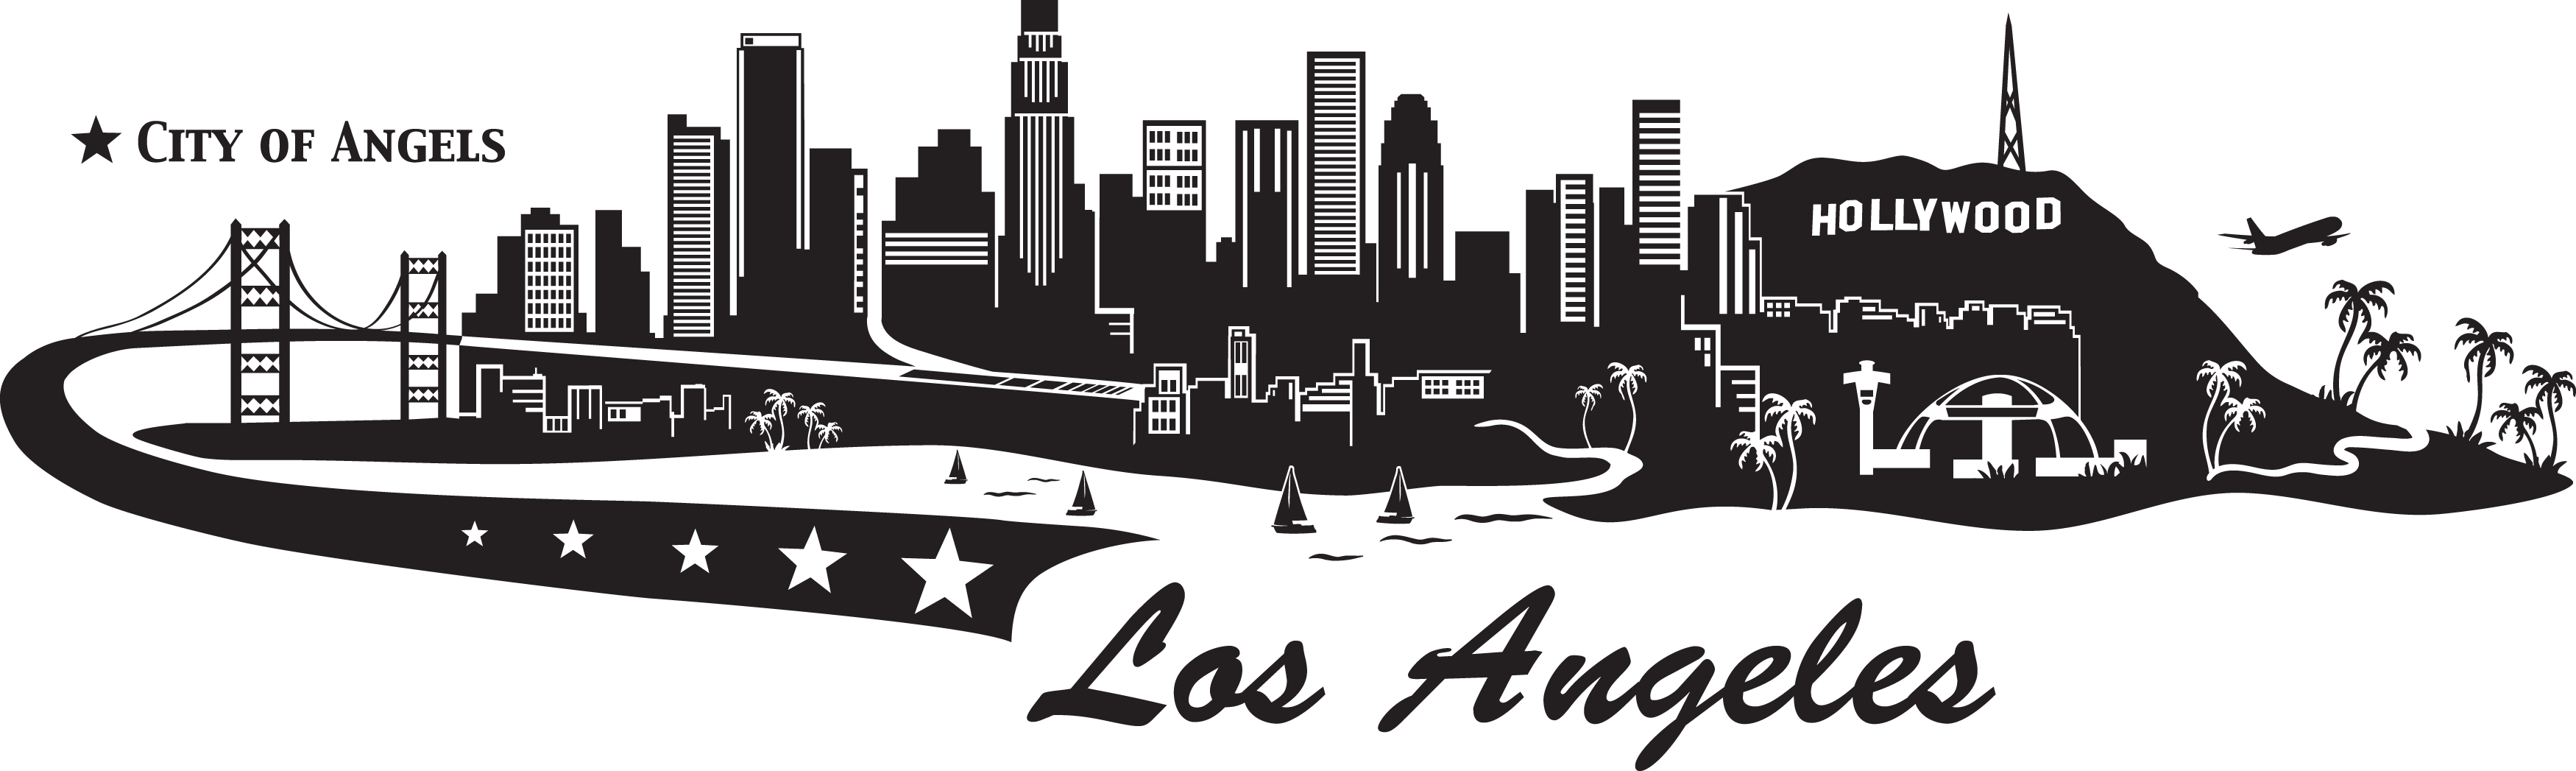 Los angeles skyline png. City wall decal decalwall